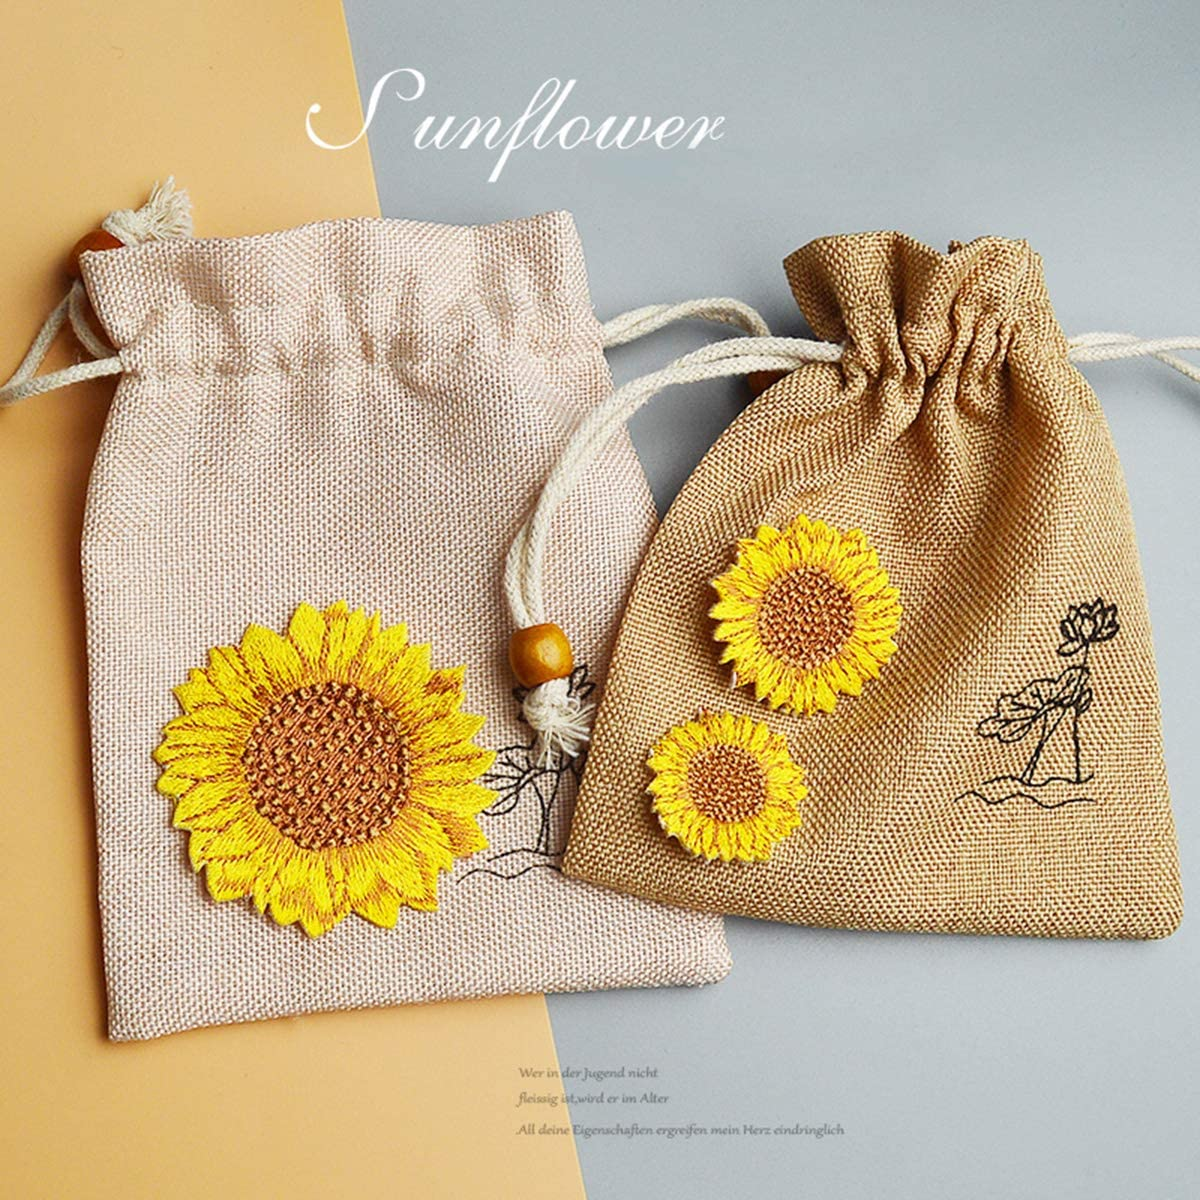 Misscrafts 3pcs Iron on Patches Sunflower Appliques in Assorted Size Iron Embroidery Applique Decoration DIY Patch for Backpack Clothing Men Women Kids